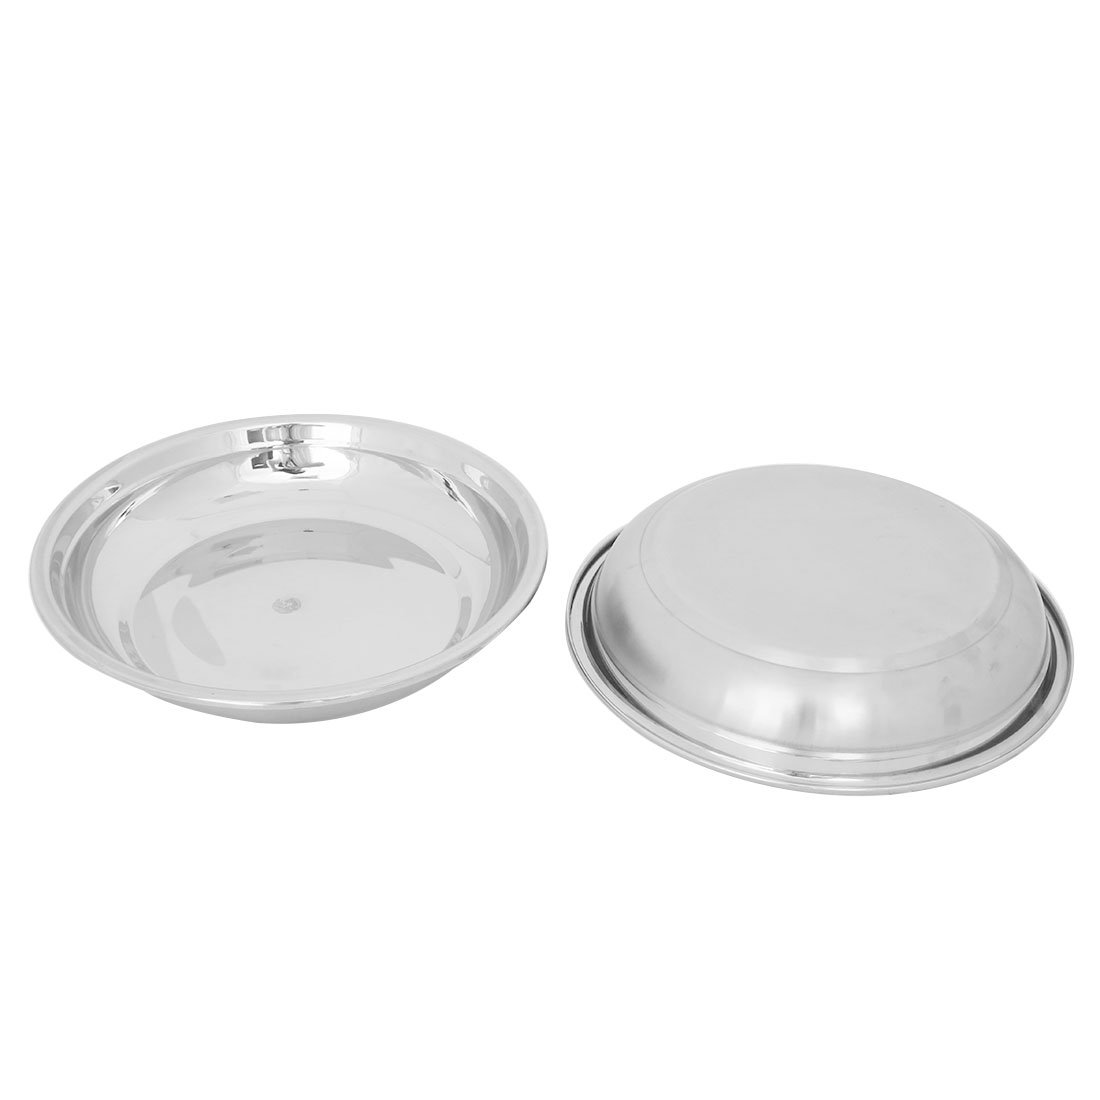 uxcell Stainless Steel Tableware Soup Food Fruit Rice Meal Dinner Container Mixing Bowl 2pcs